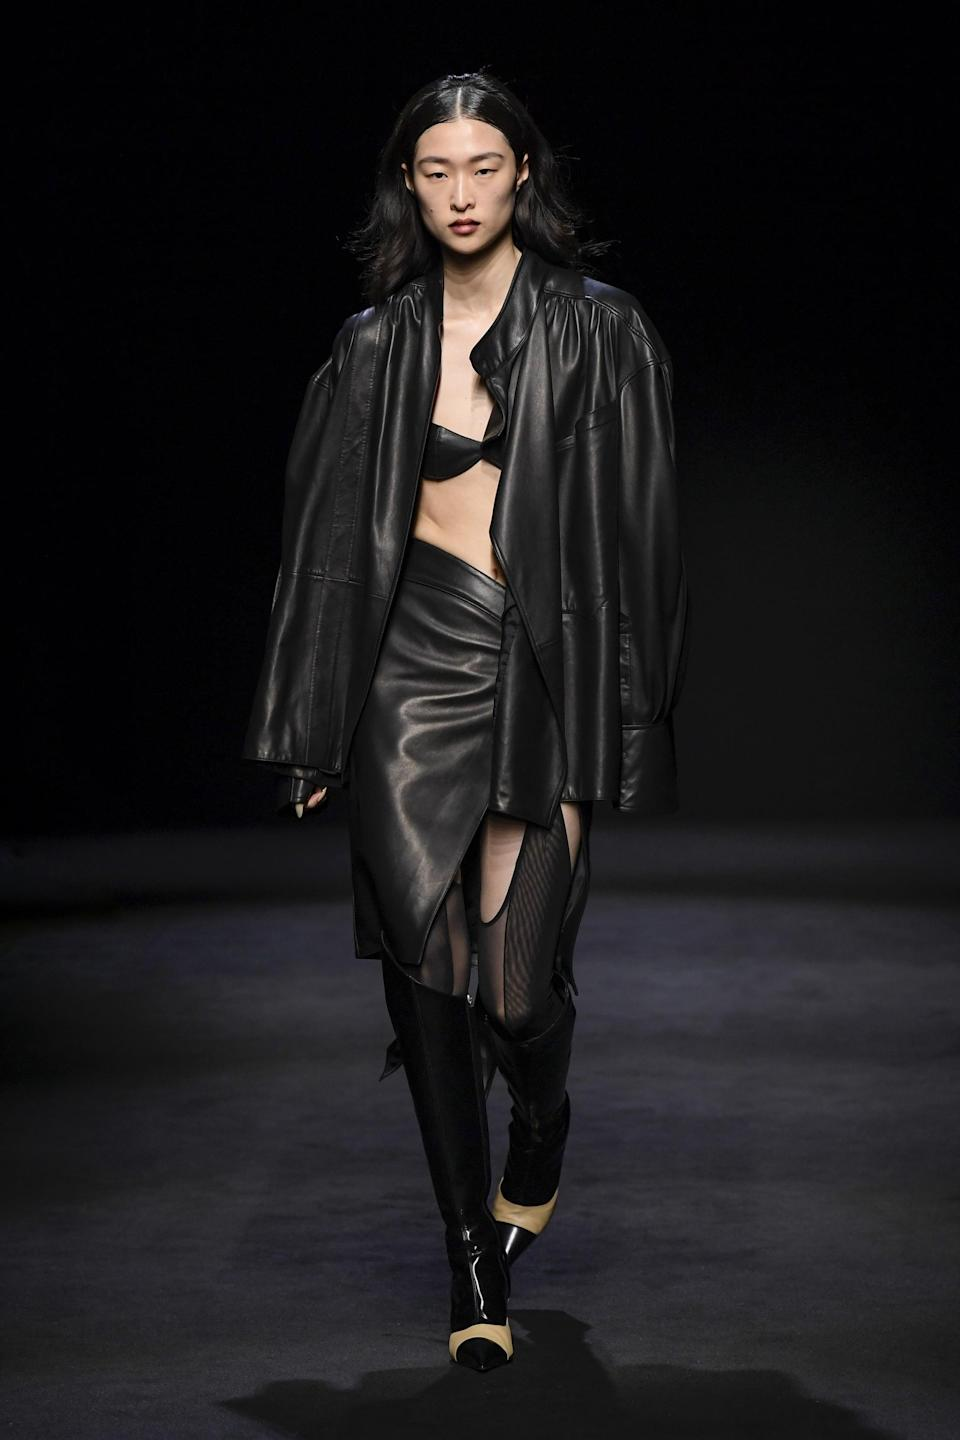 <p>You can always count on Mugler to bring a sultry flare to Paris Fashion Week. To achieve the look, opt for structural silhouettes, mesh peek-a-boo elements, body-clinging leather, and, of course, bodysuits.</p>